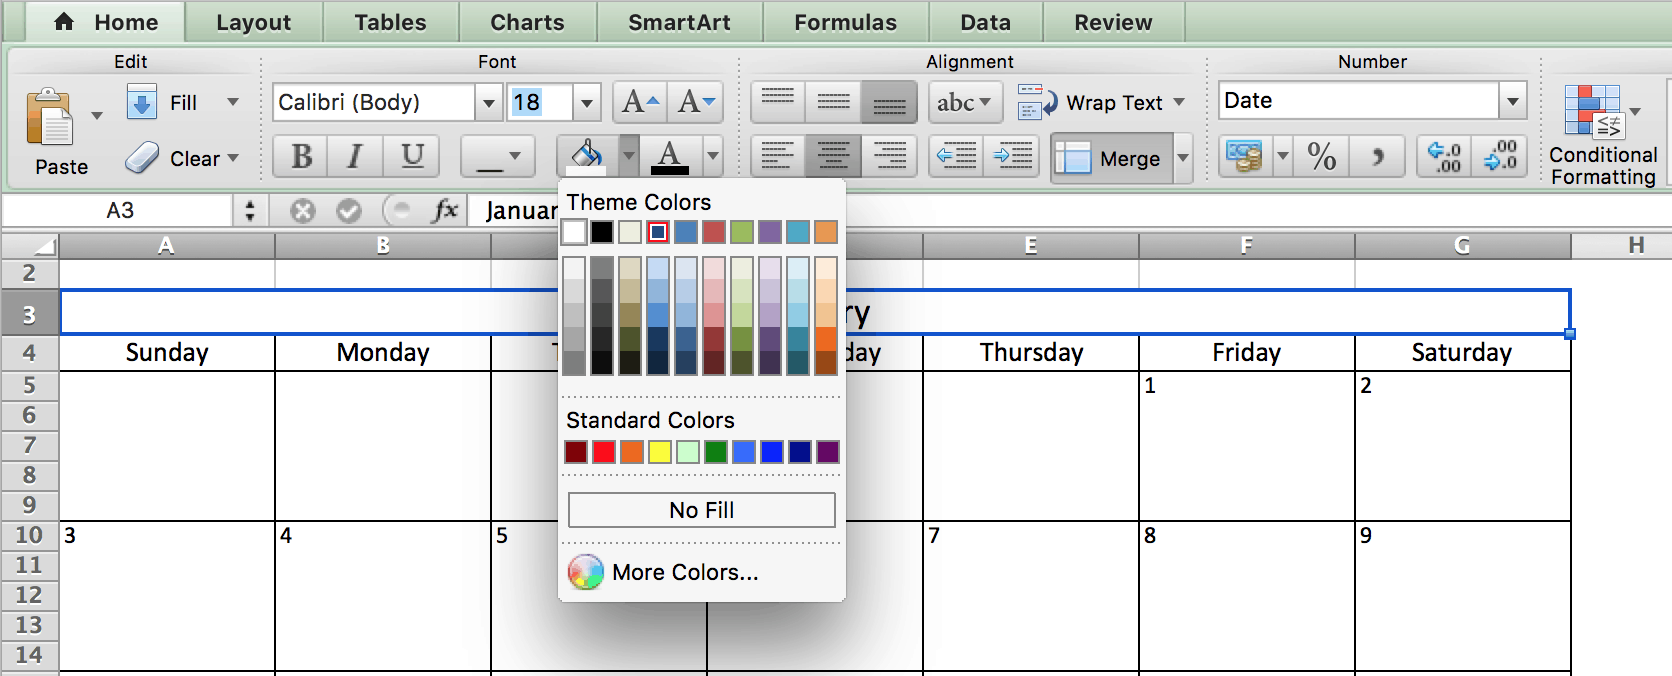 Ediblewildsus  Marvellous Make A  Calendar In Excel Includes Free Template With Remarkable Choosing Colors  Calendar In Excel With Enchanting Paste In Excel Also Data Entry Excel In Addition Excel Spreadsheet Templates For Tracking And Index Match Formula Excel As Well As Delete Rows Excel Additionally Google Spreadsheet Vs Excel From Smartsheetcom With Ediblewildsus  Remarkable Make A  Calendar In Excel Includes Free Template With Enchanting Choosing Colors  Calendar In Excel And Marvellous Paste In Excel Also Data Entry Excel In Addition Excel Spreadsheet Templates For Tracking From Smartsheetcom